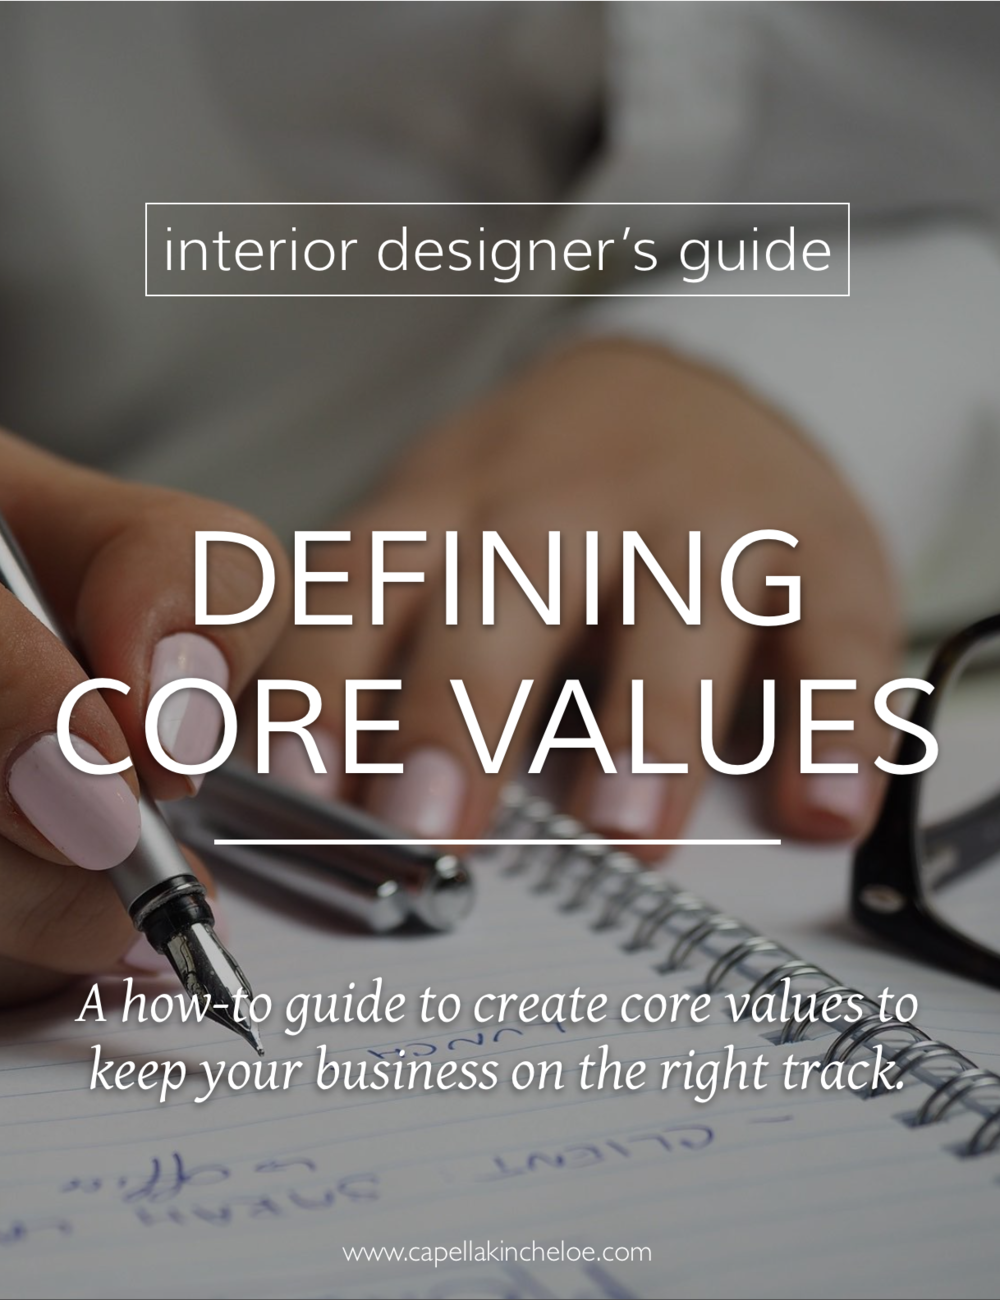 Defining your core values as an interior design business may not be high on your list of priorities, but they can help keep you on course and focused on your goals.